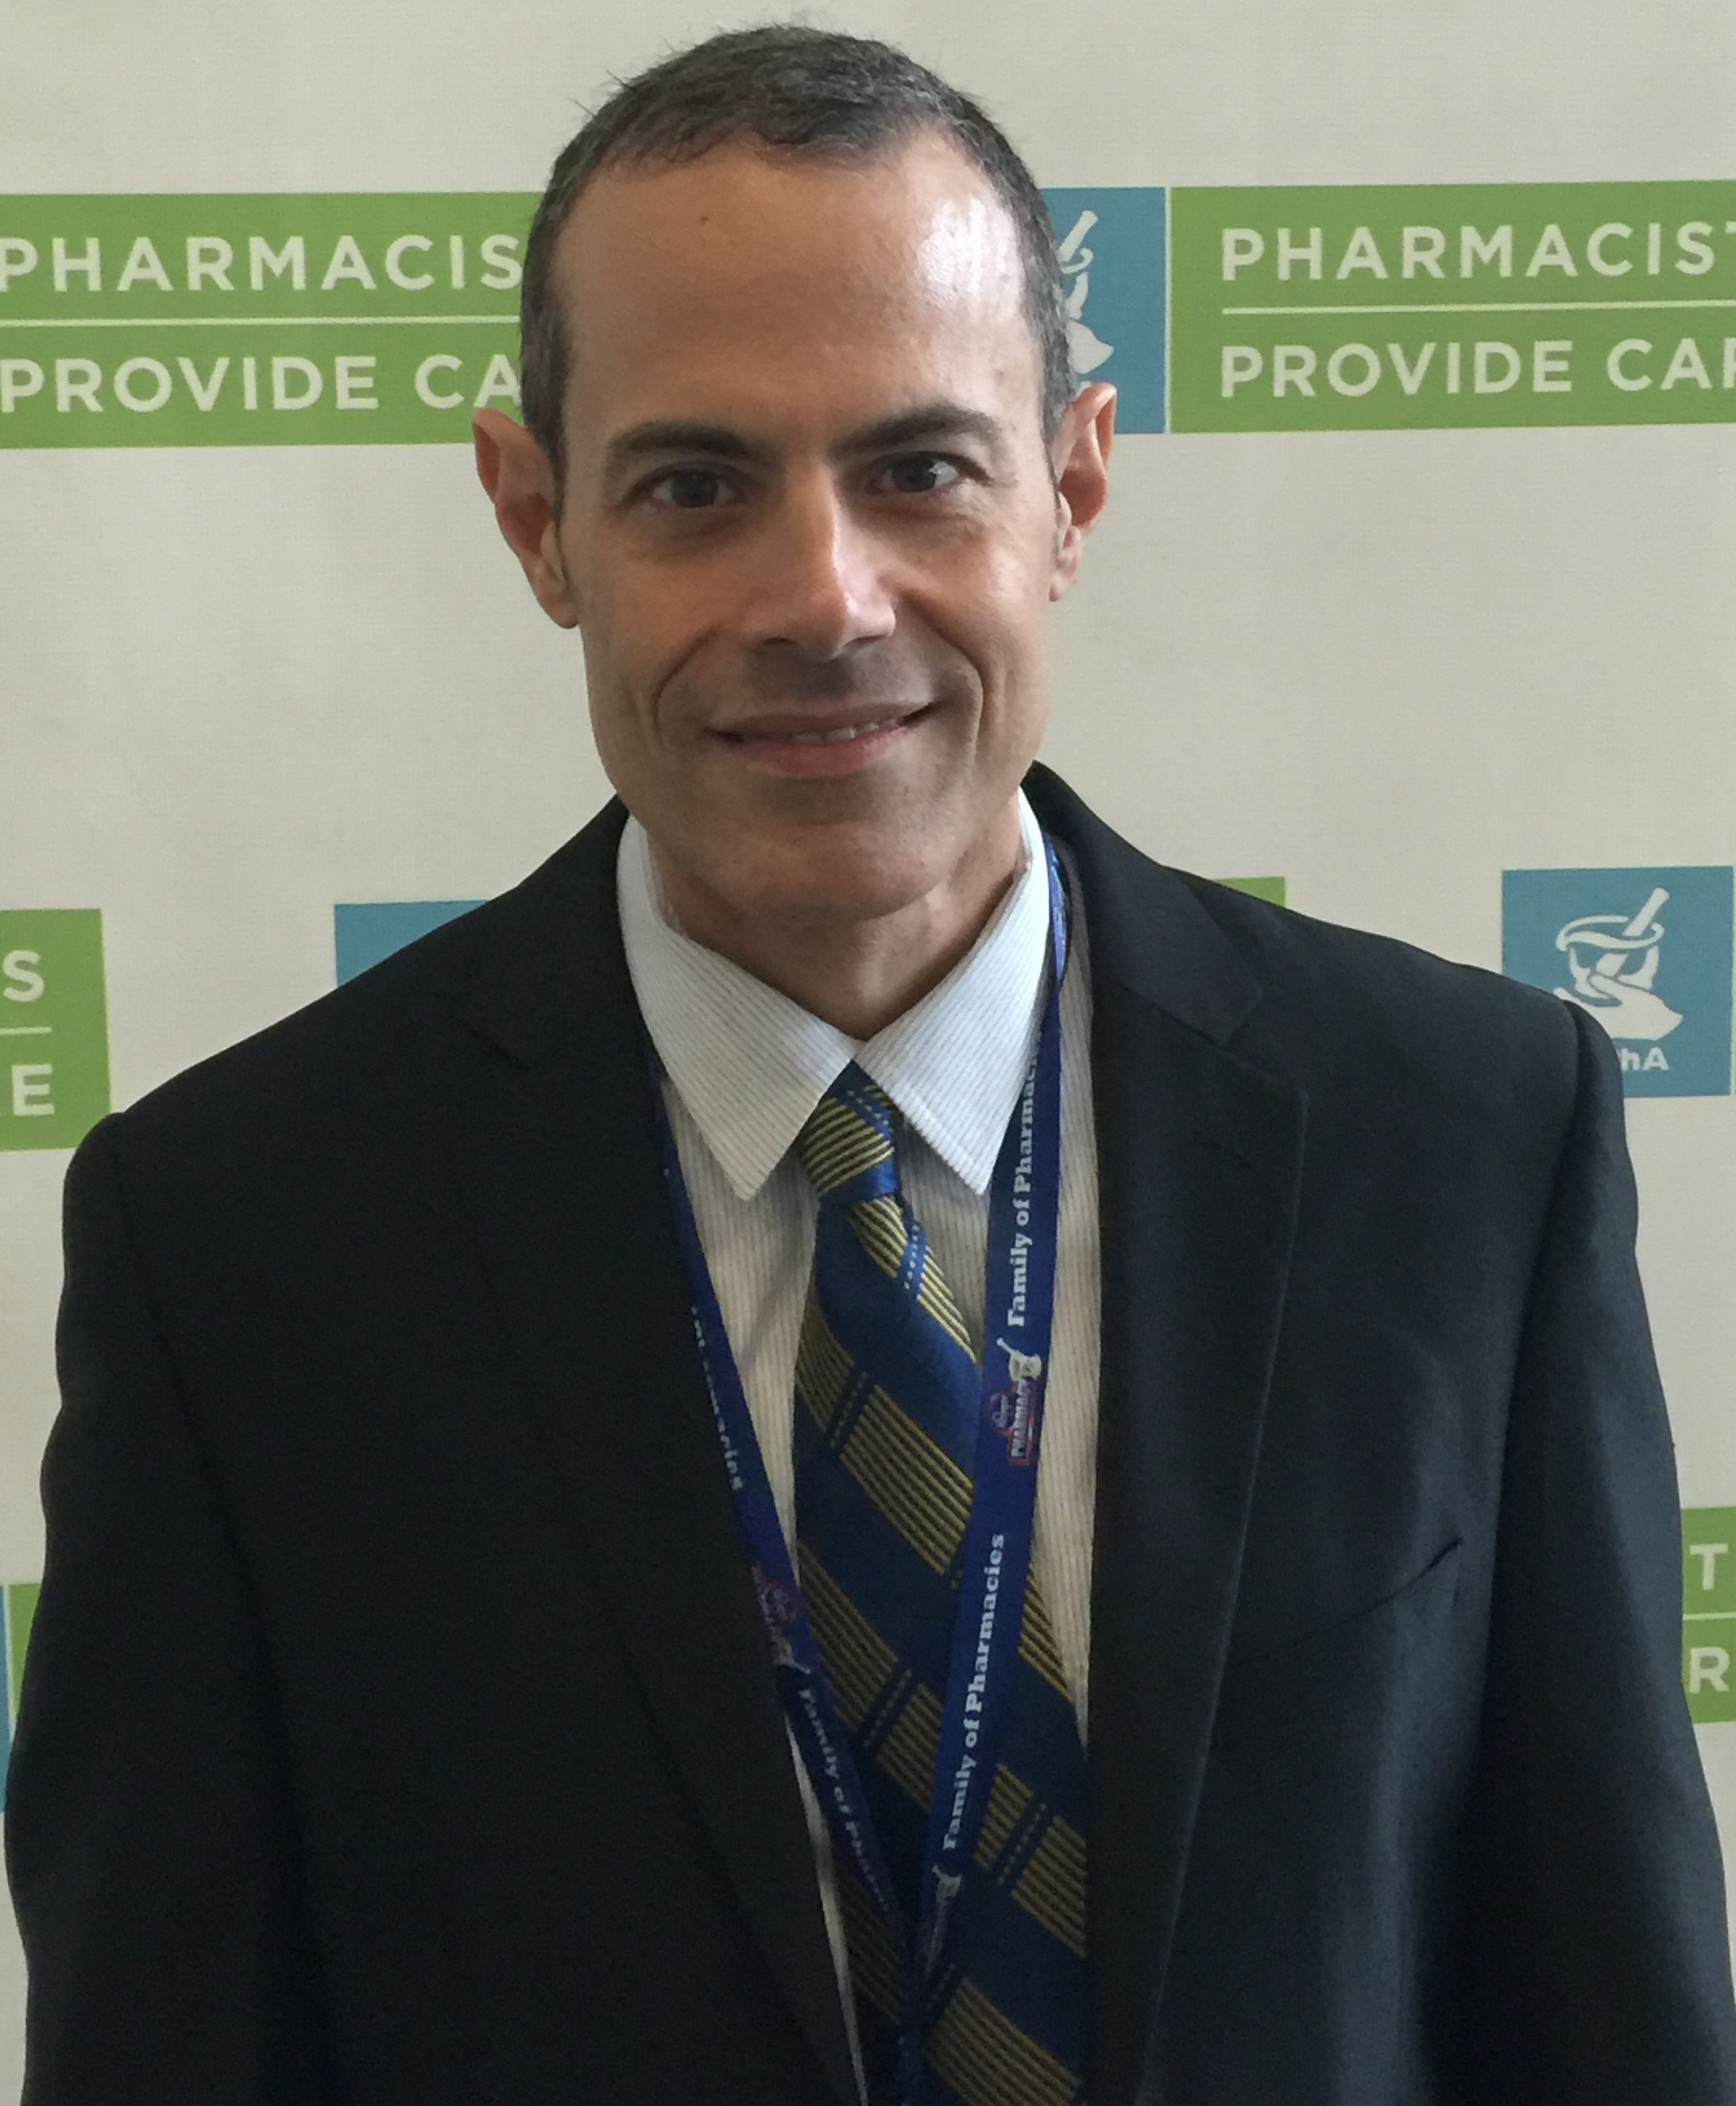 Larry Calemine, RPh, BS Pharm